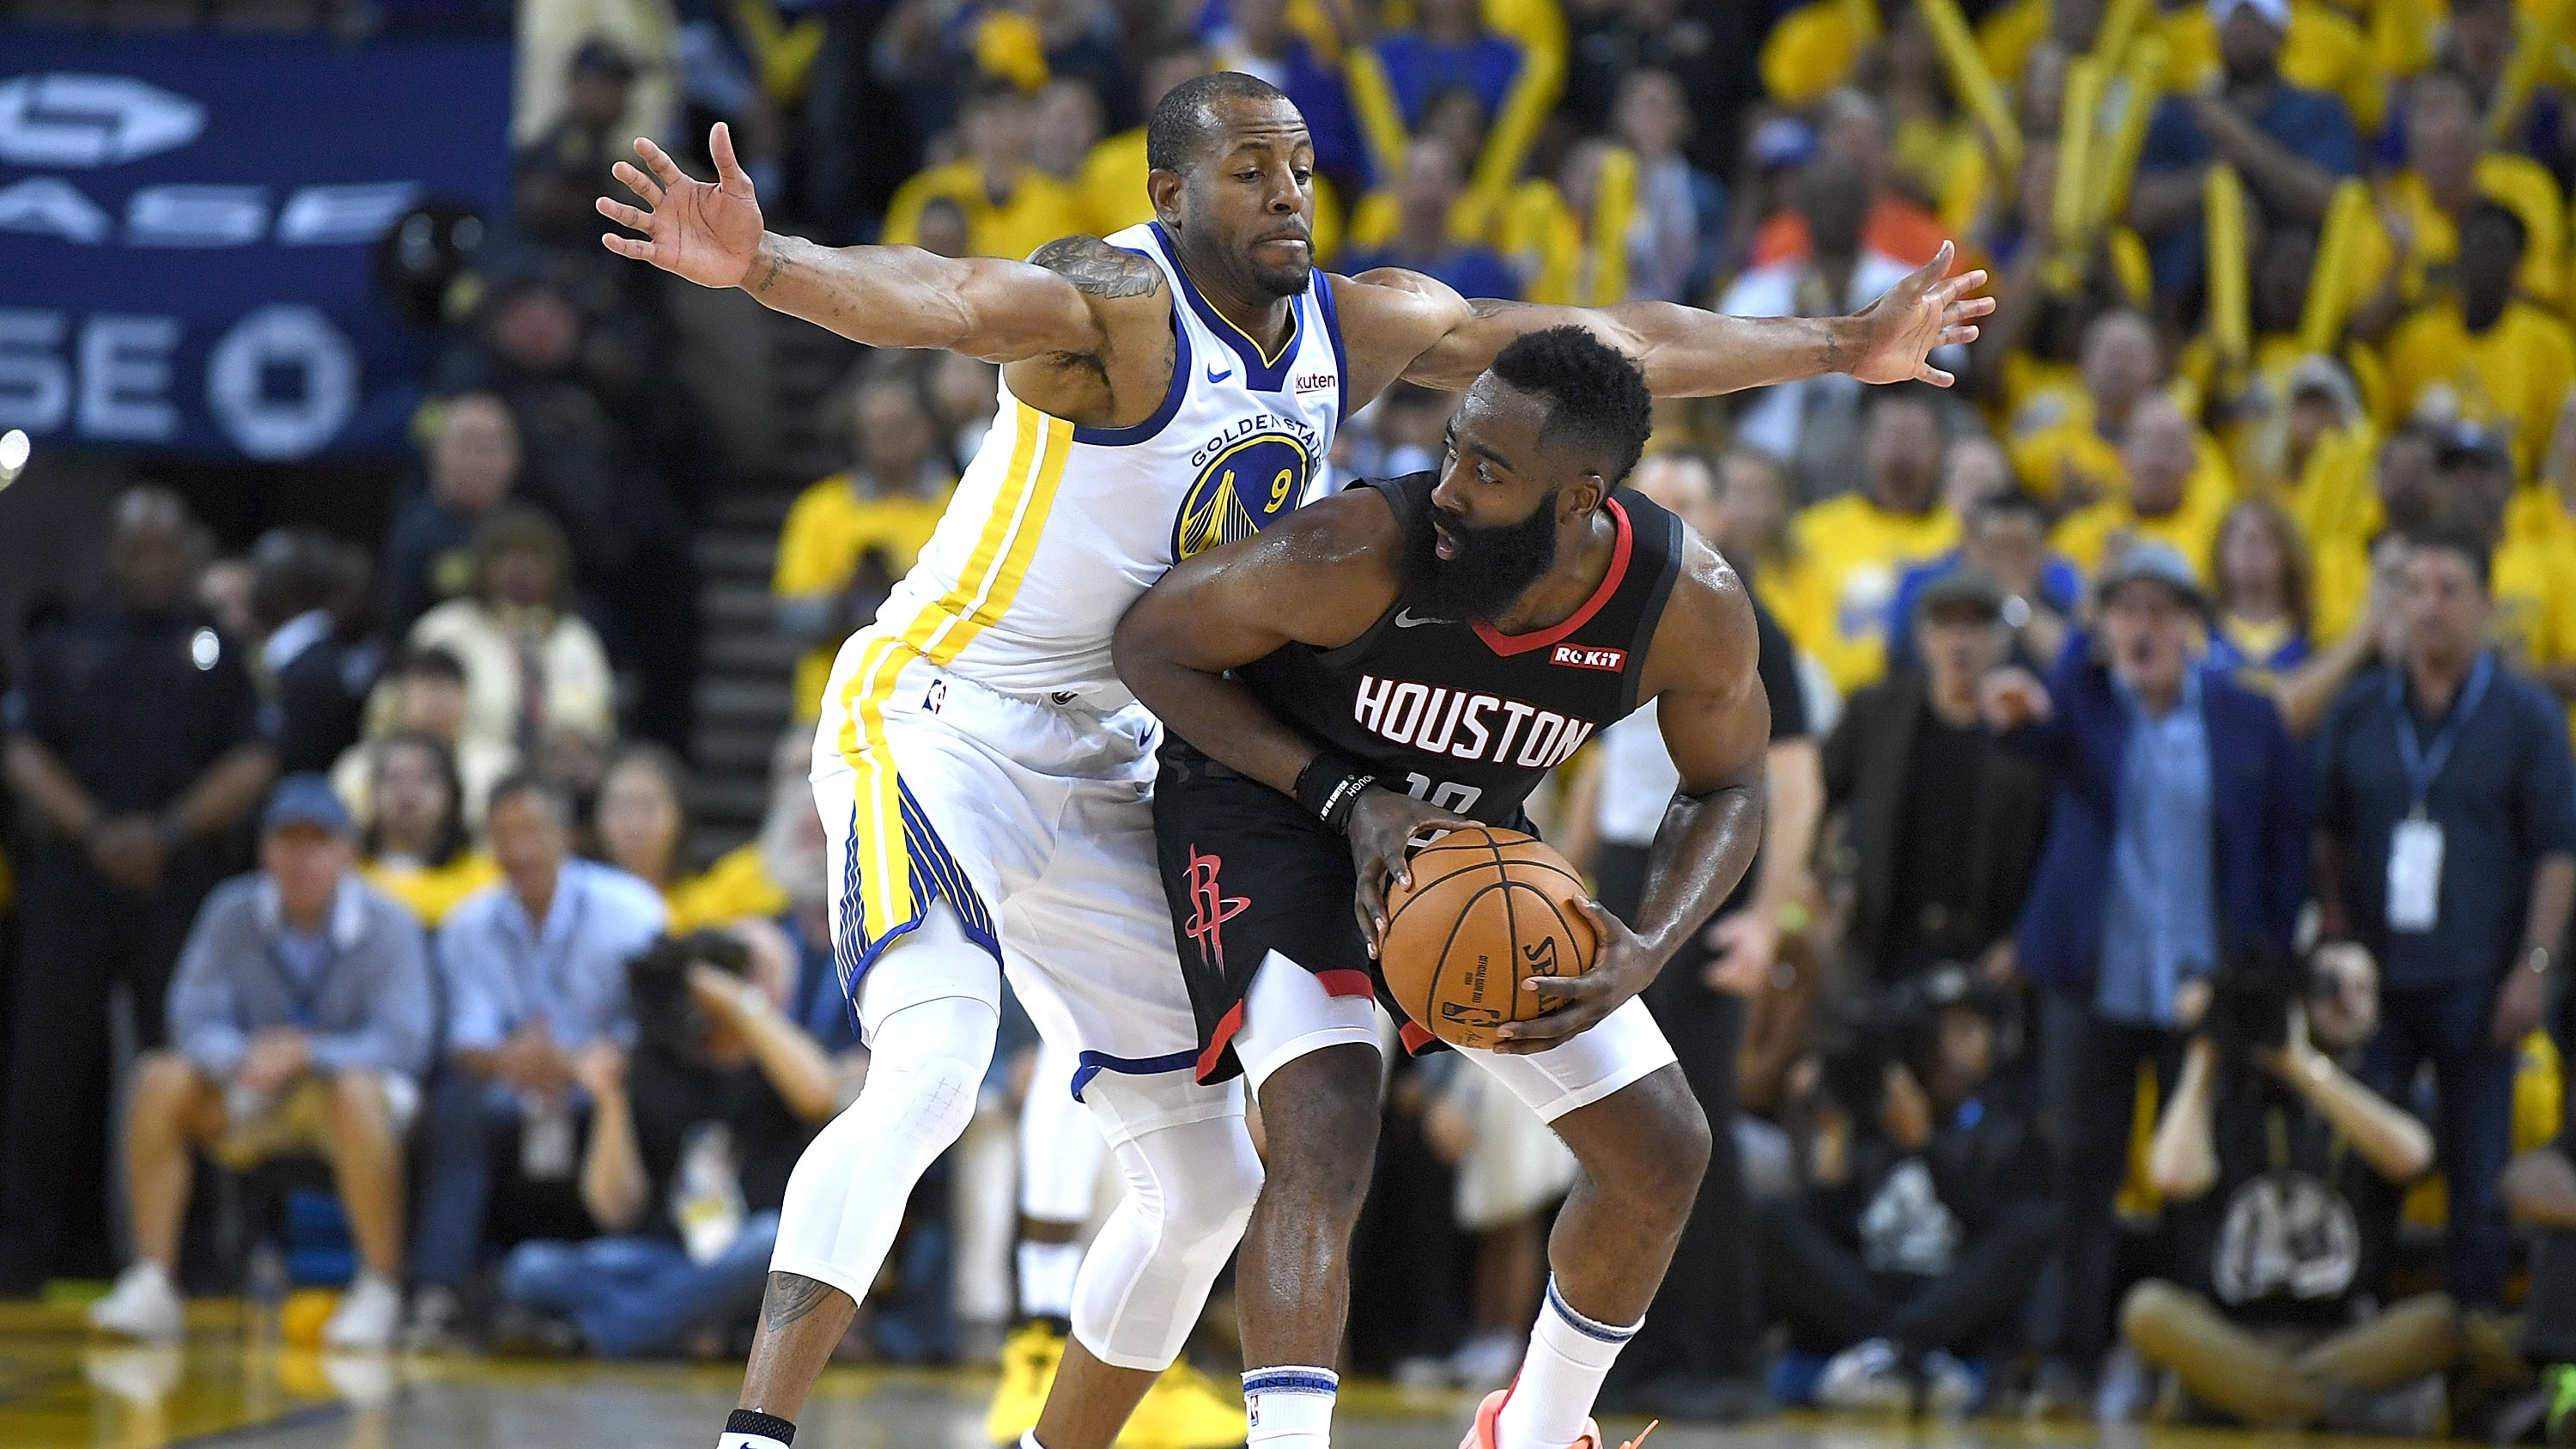 OAKLAND, CA - APRIL 28:  Andre Iguodala #9 of the Golden State Warriors closely guards James Harden #13 of the Houston Rockets during Game One of the Second Round of the 2019 NBA Western Conference Playoffs at ORACLE Arena on April 28, 2019 in Oakland, California. NOTE TO USER: User expressly acknowledges and agrees that, by downloading and or using this photograph, User is consenting to the terms and conditions of the Getty Images License Agreement.  (Photo by Thearon W. Henderson/Getty Images)